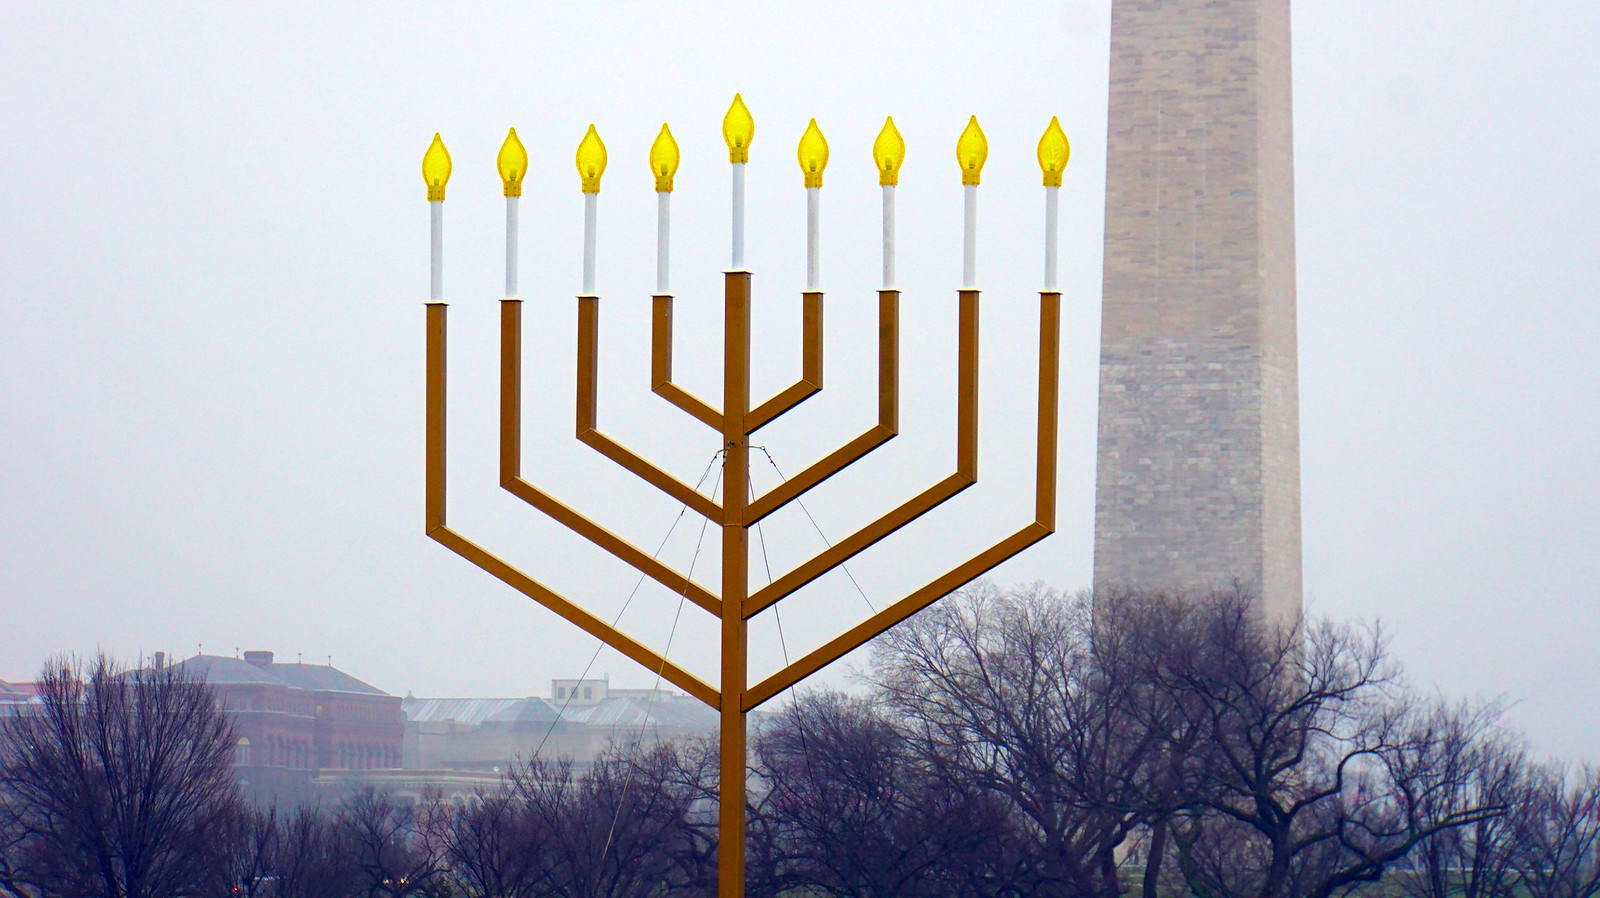 National Menorah Washington DC USA 50587